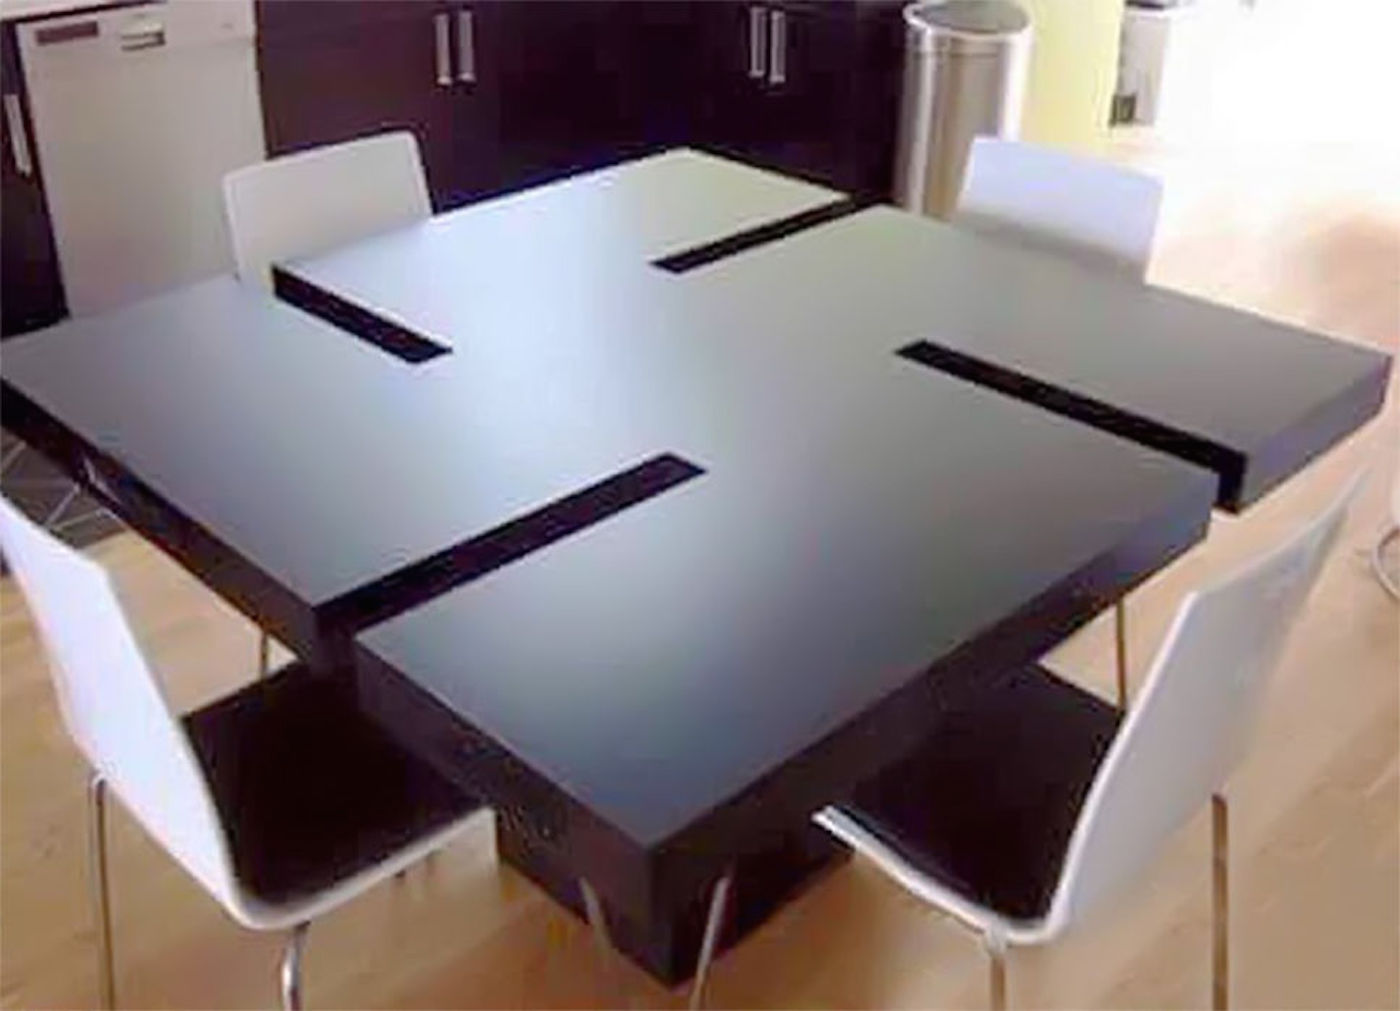 Ikea To Take Legal Action Over Swastika Dining Table Called